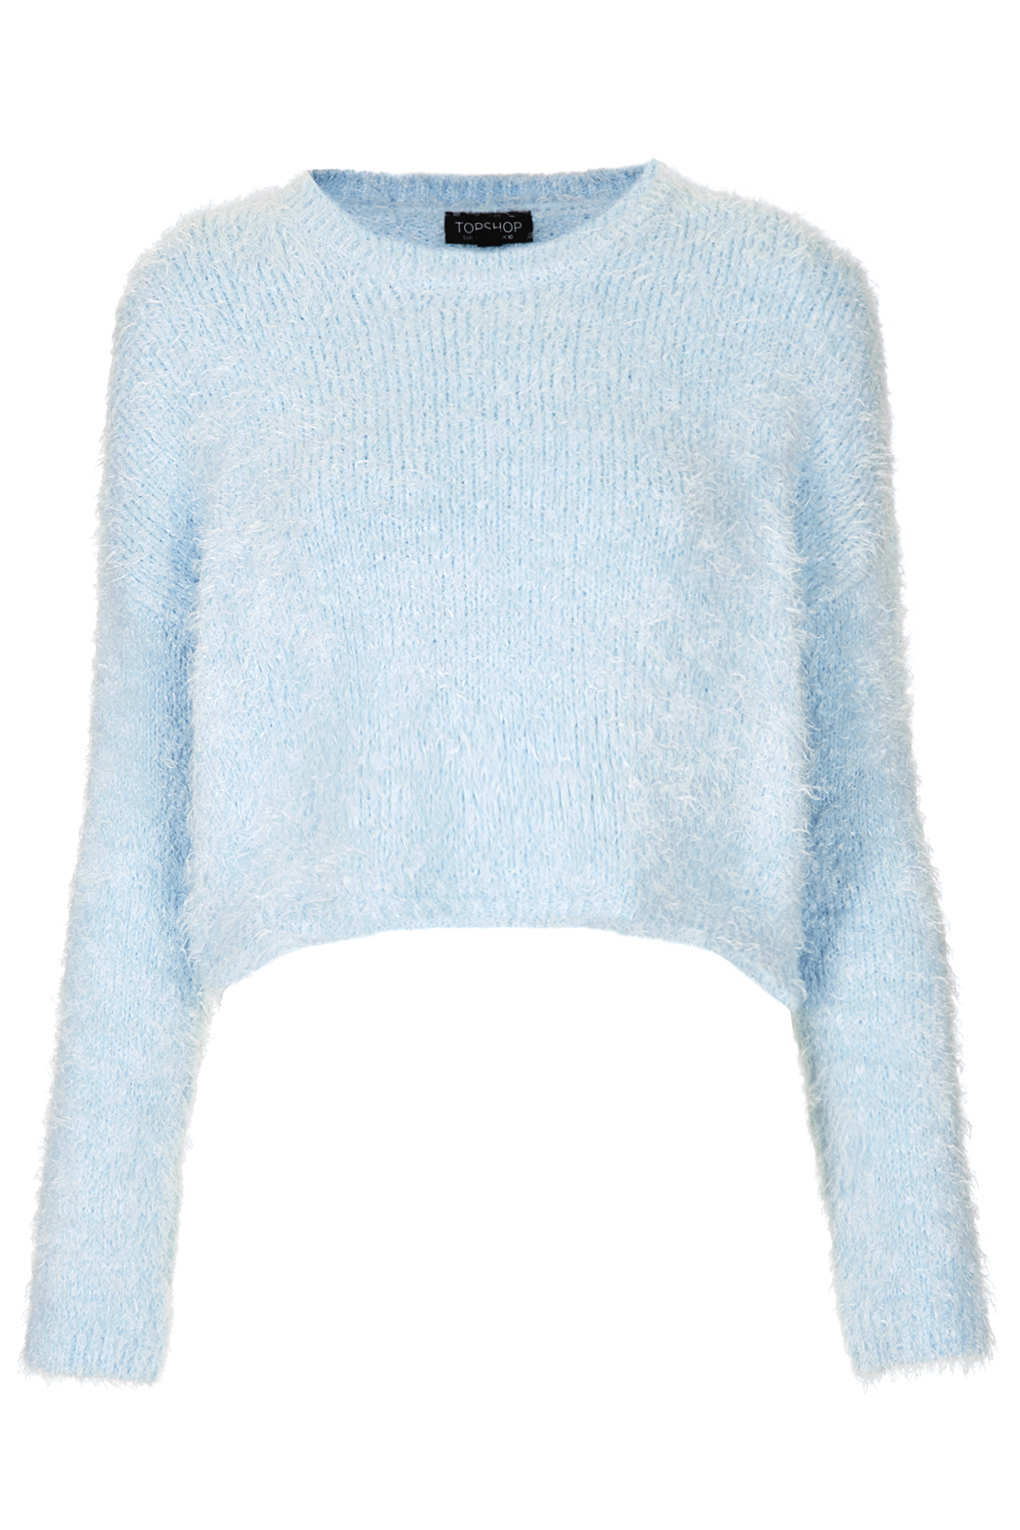 Knitting Pattern Cropped Jumper : Topshop Knitted Fluffy Crop Jumper in Blue Lyst